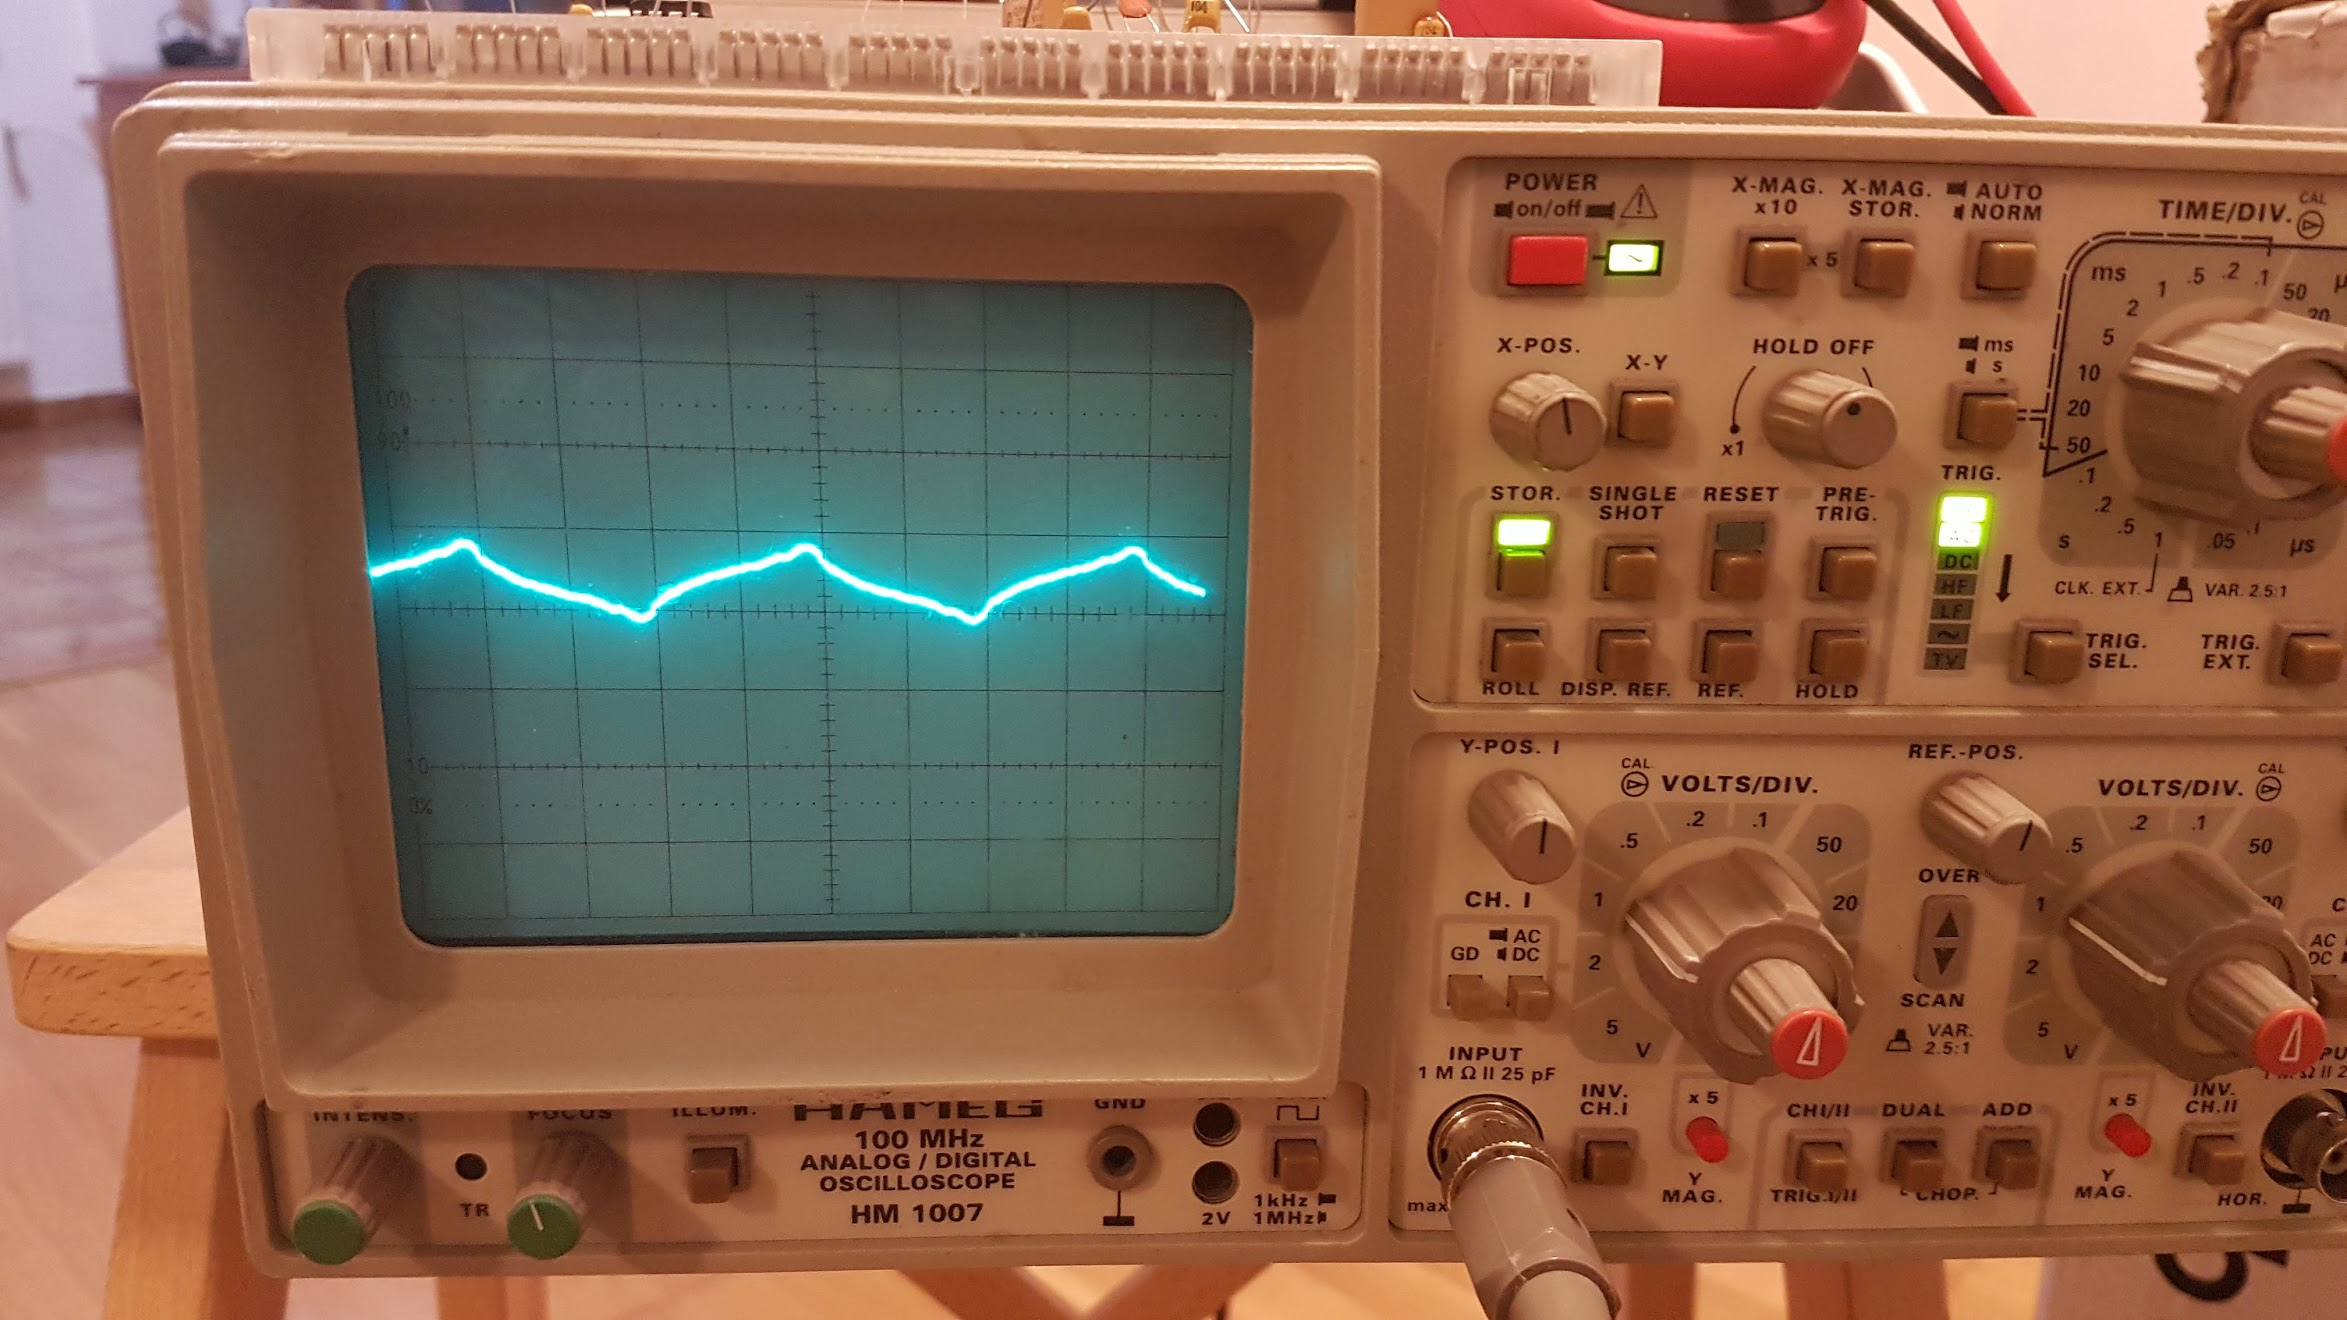 Energy monitor oscilloscope